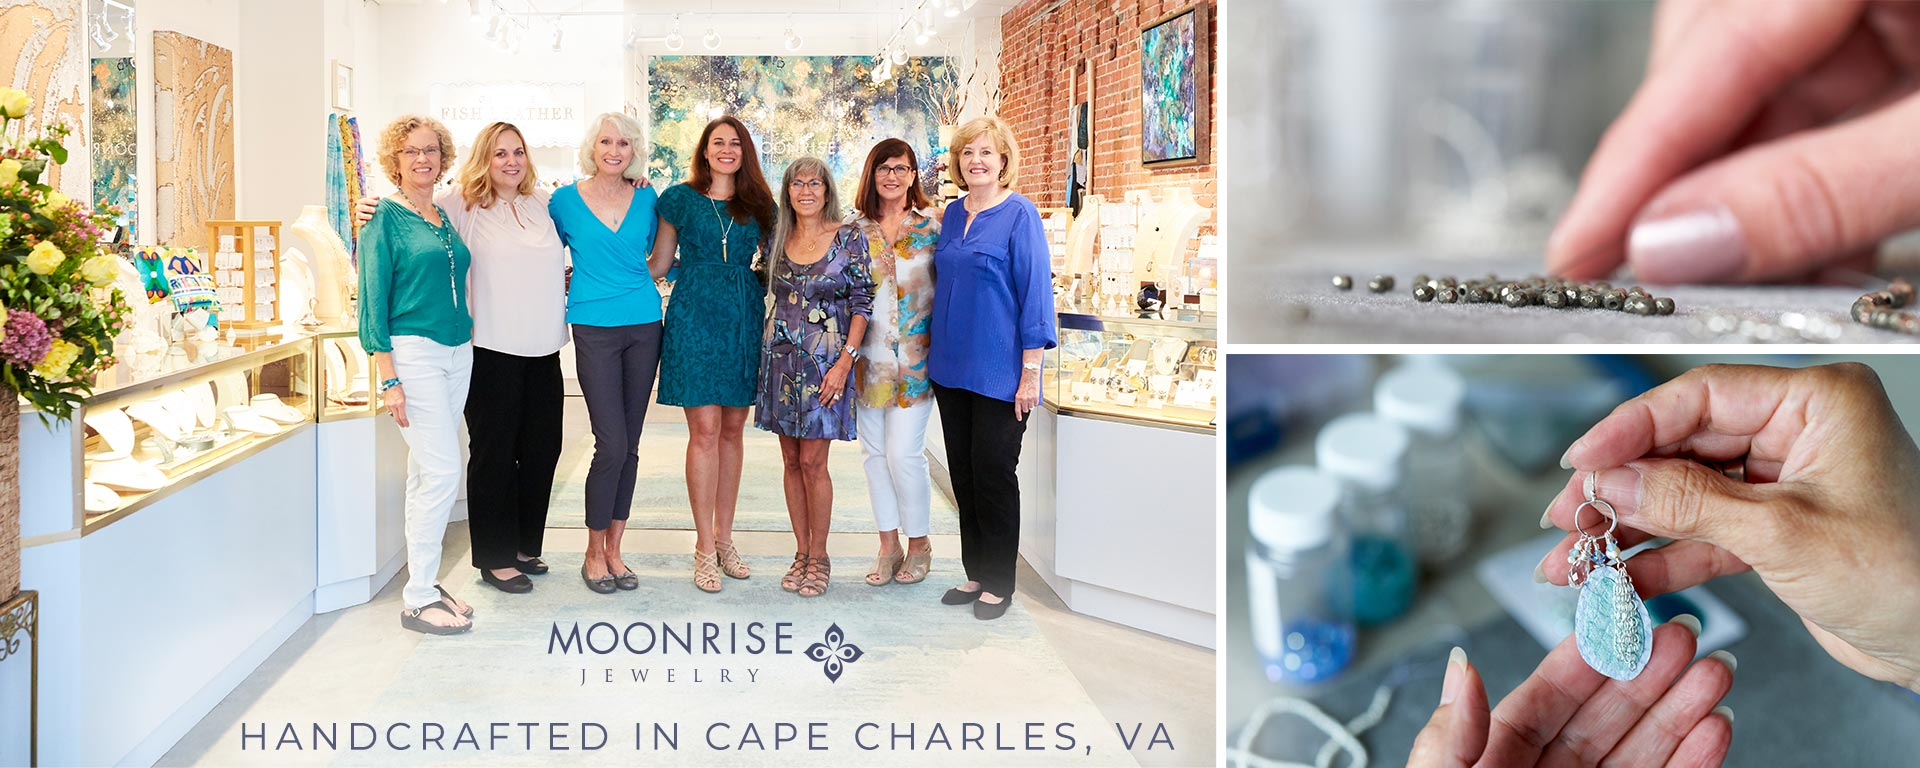 Handcrafted in Cape Charles